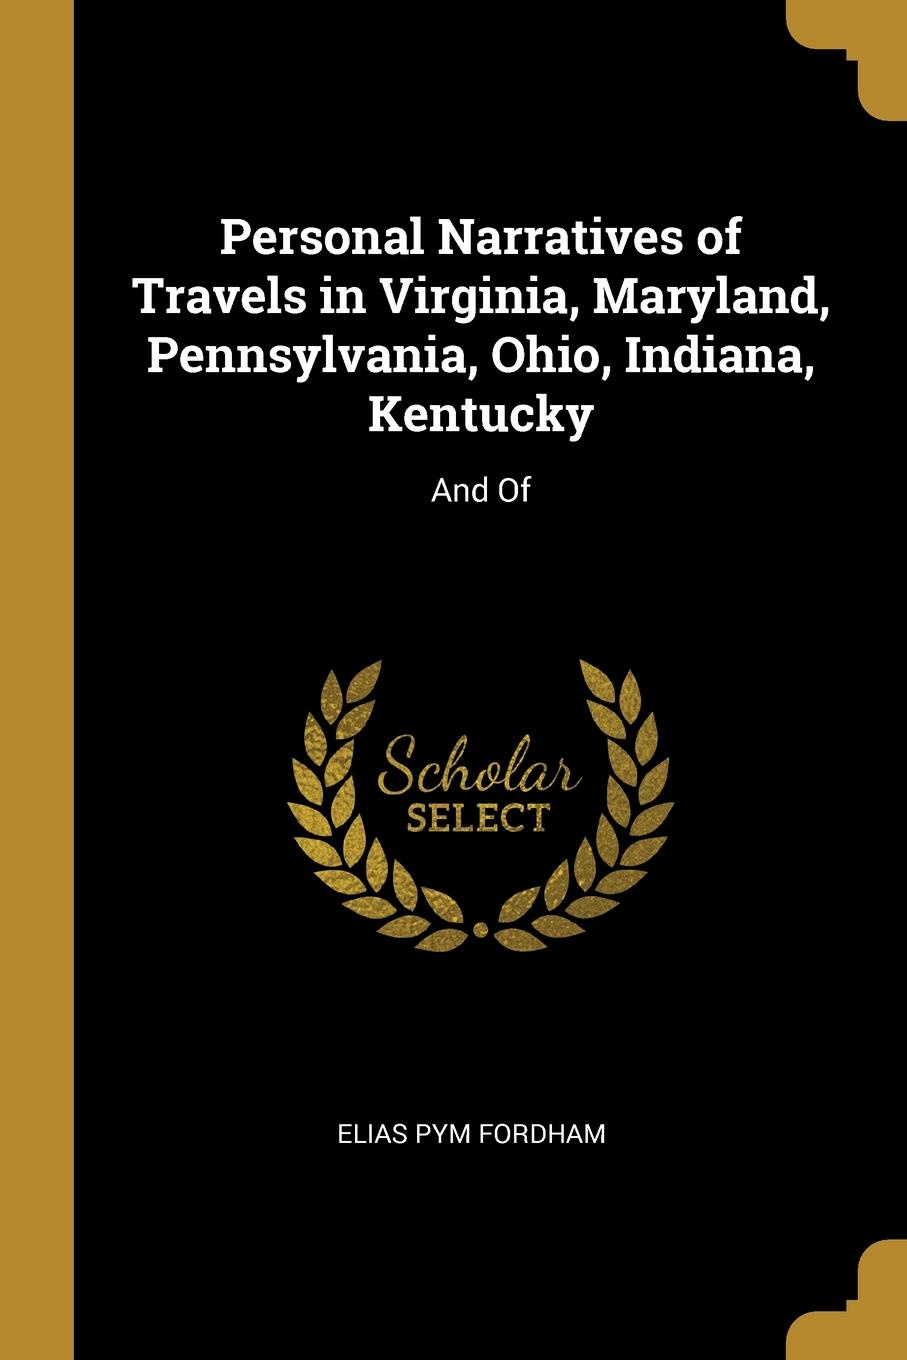 Elias Pym Fordham. Personal Narratives of Travels in Virginia, Maryland, Pennsylvania, Ohio, Indiana, Kentucky. And Of